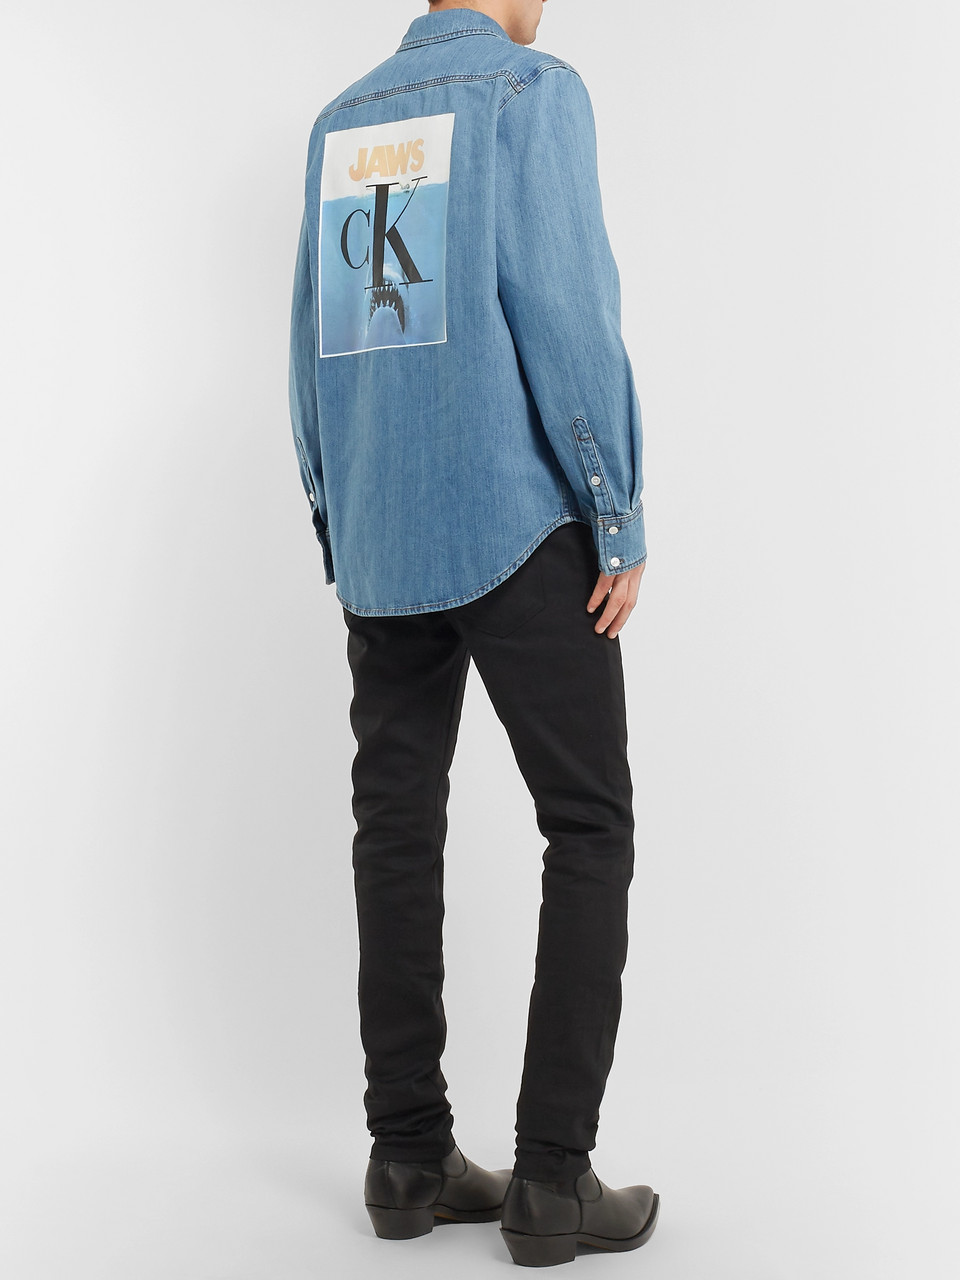 CALVIN KLEIN 205W39NYC Jaws Printed Denim Shirt